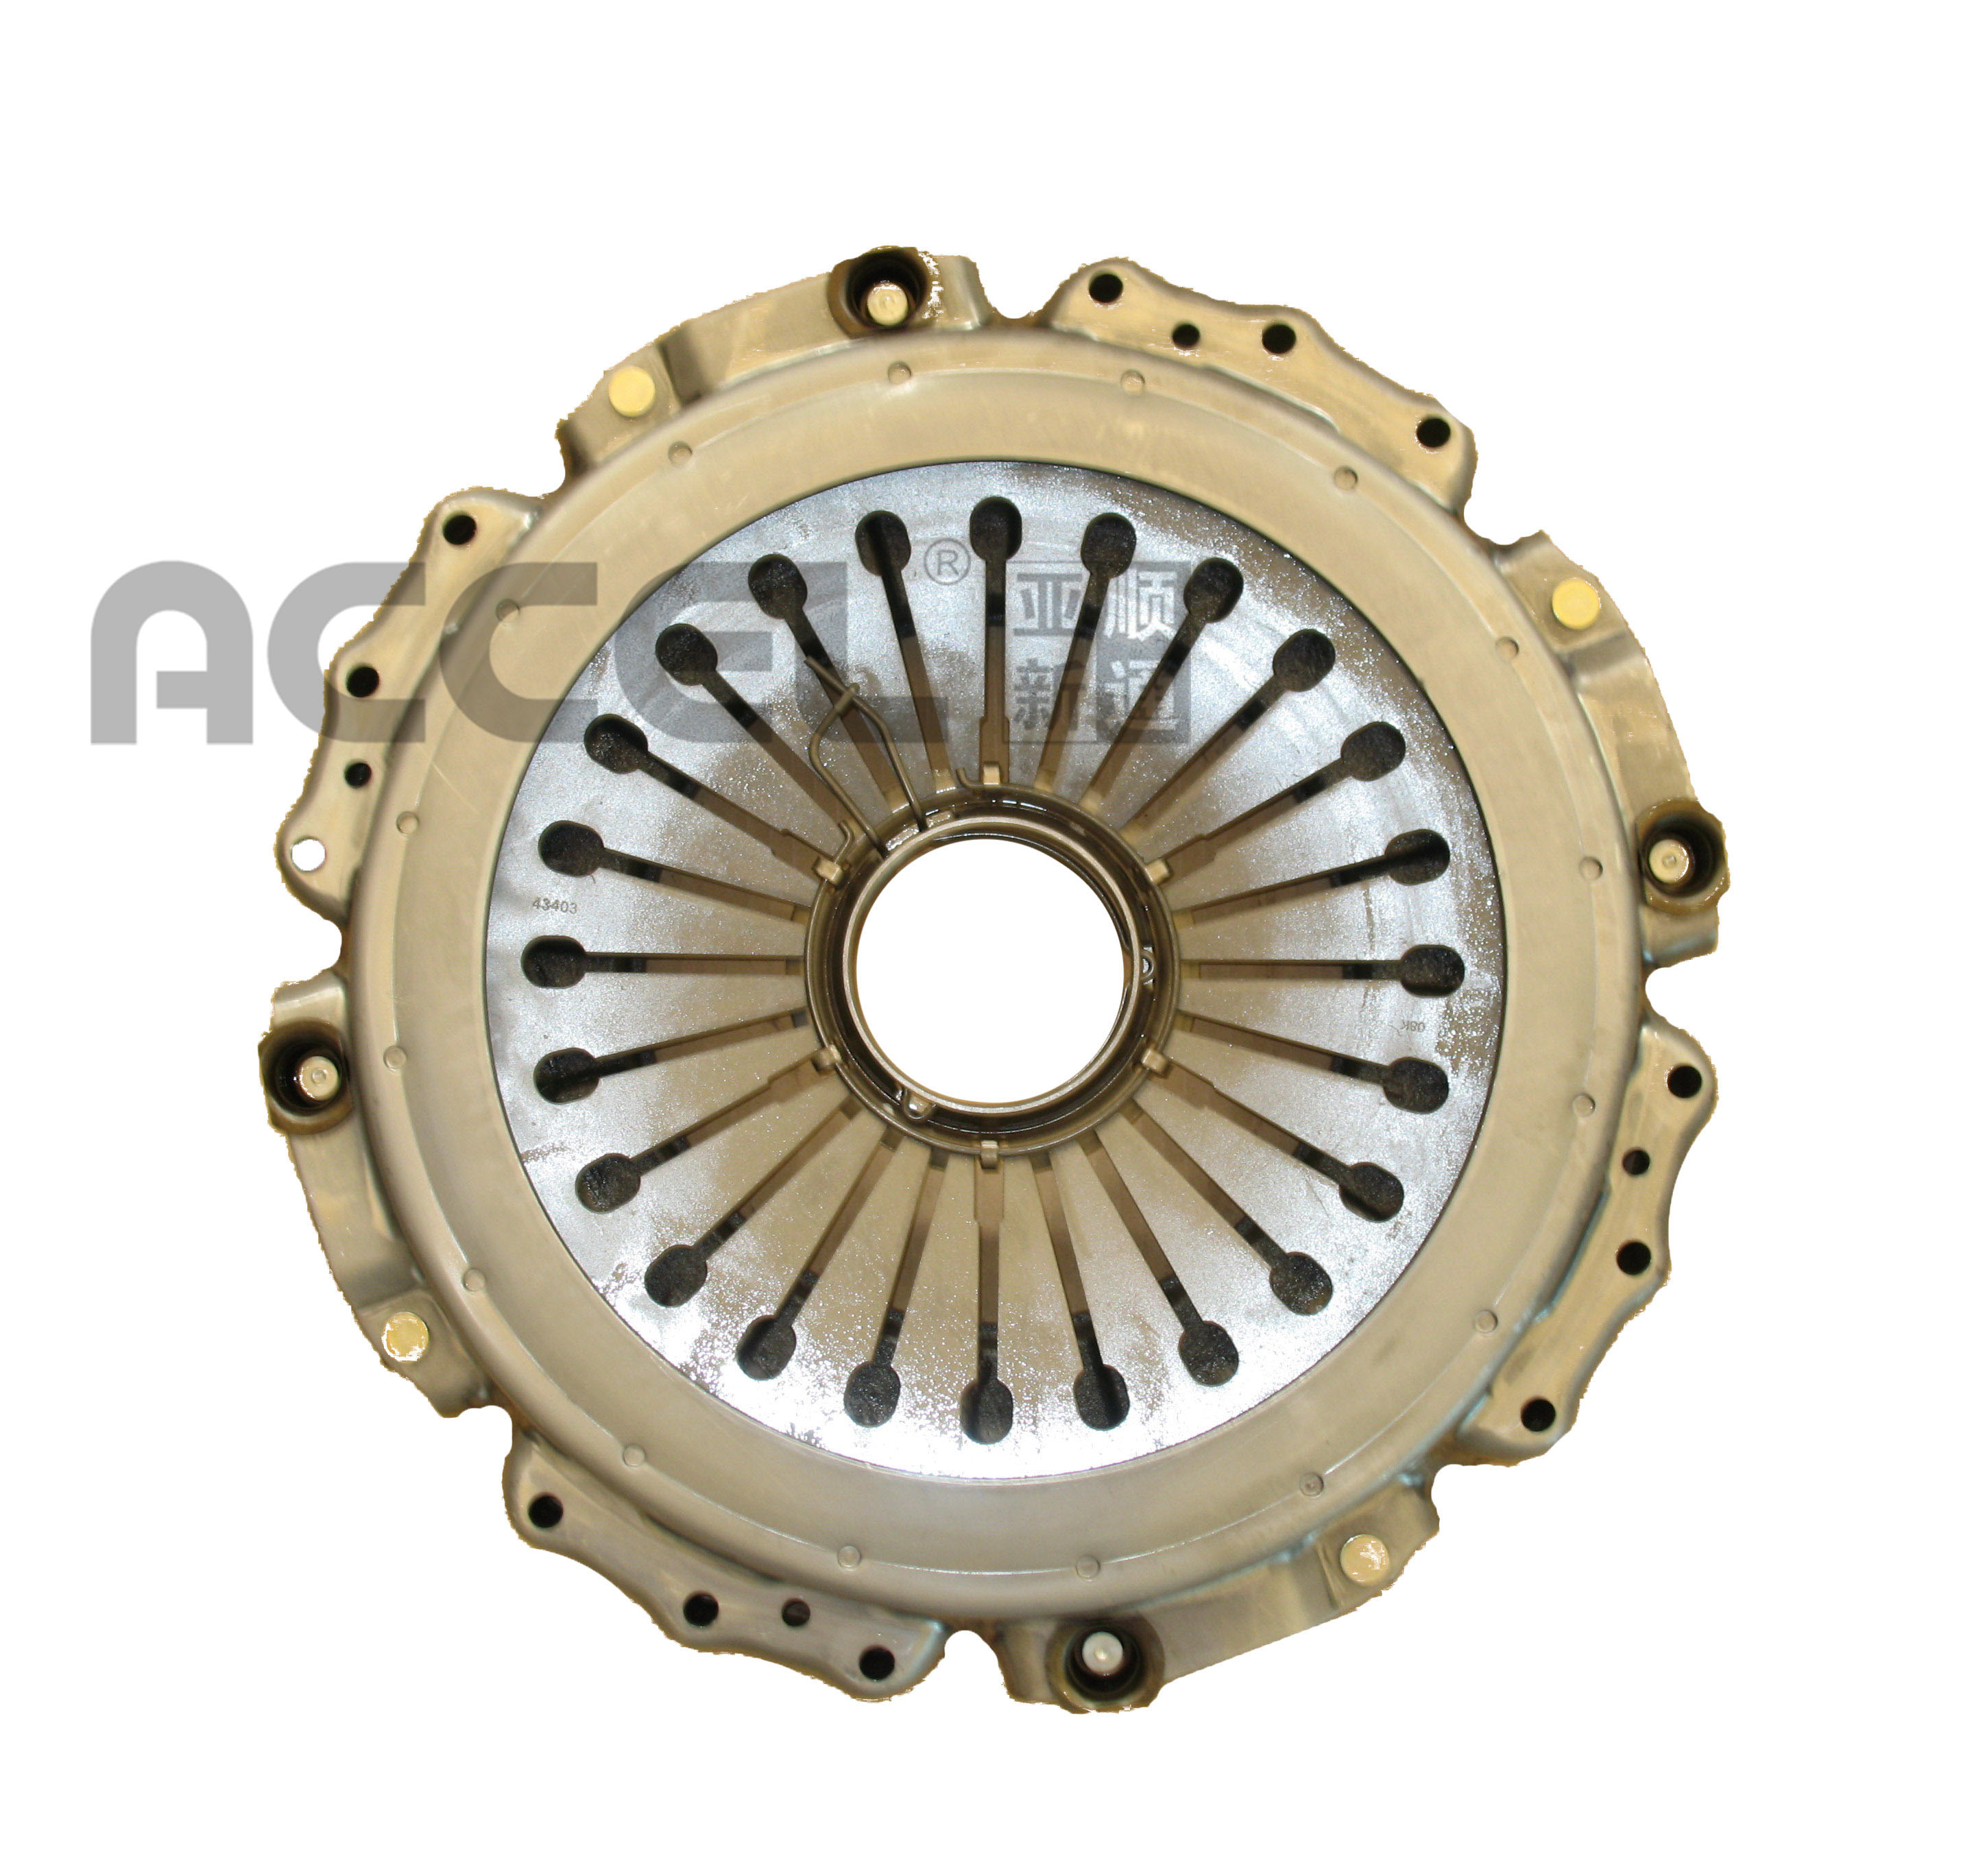 Clutch Cover/OE:NULL/430*235*450/STC-097/OTHERS/LY435